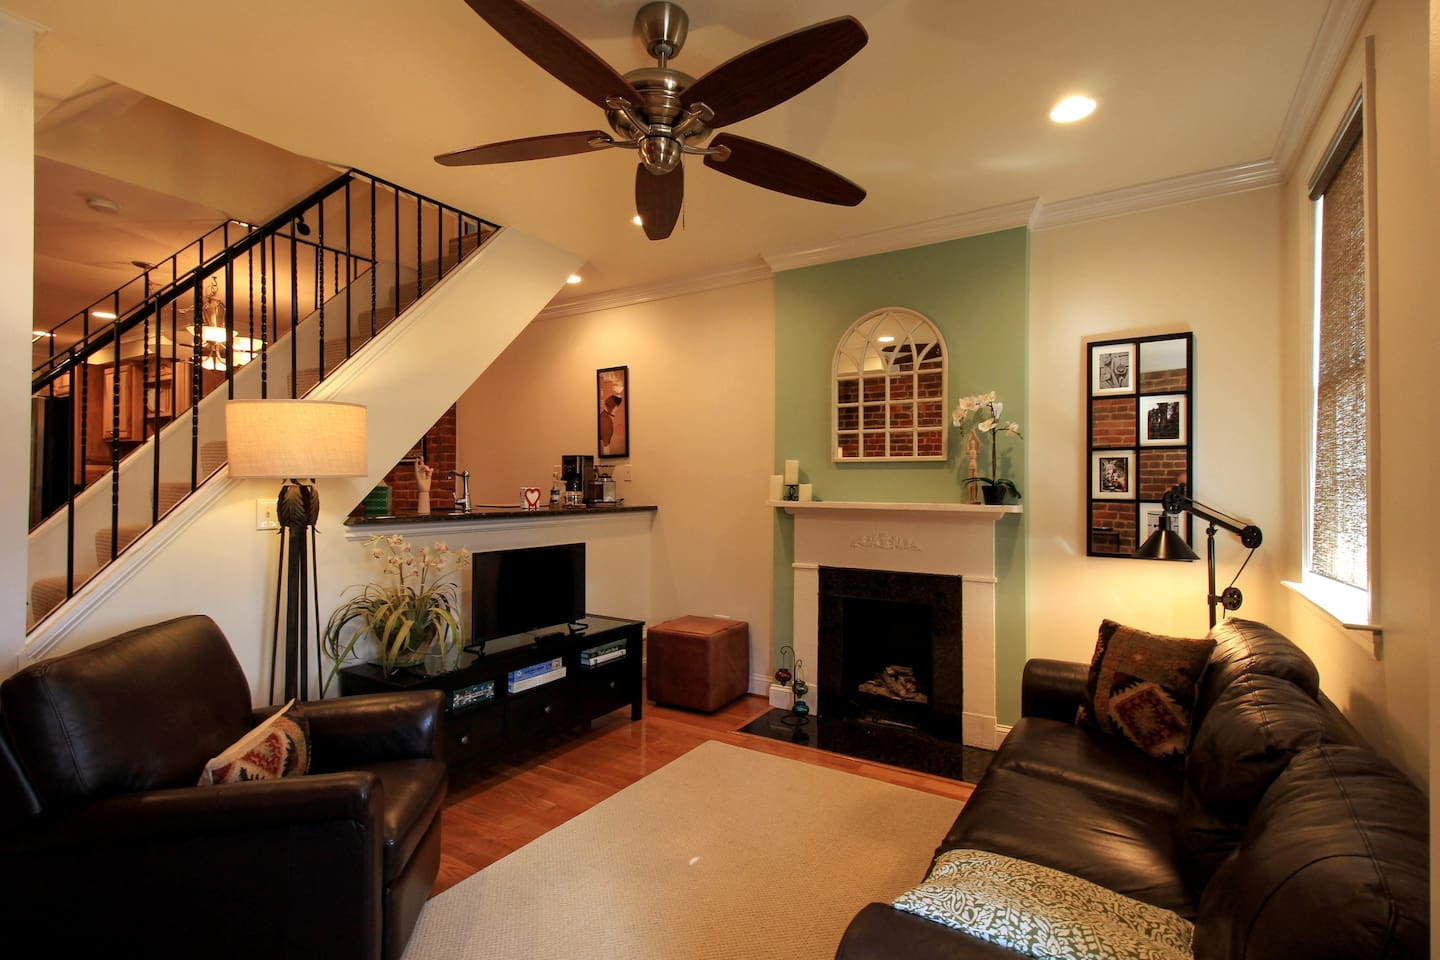 Living room of classic 1870's two over two row house.